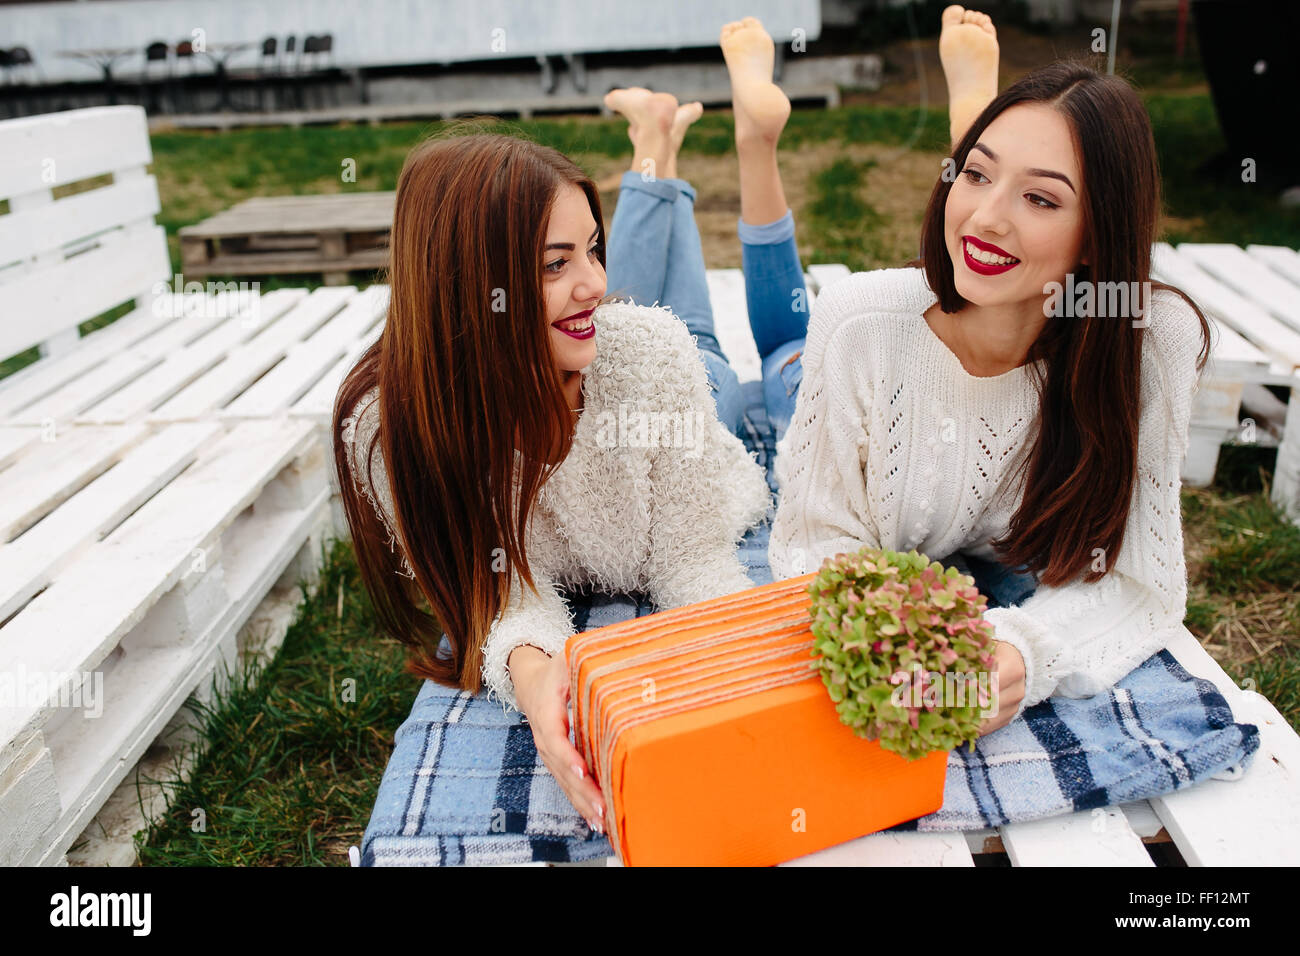 Girls lie on the bench and give each other gifts - Stock Image